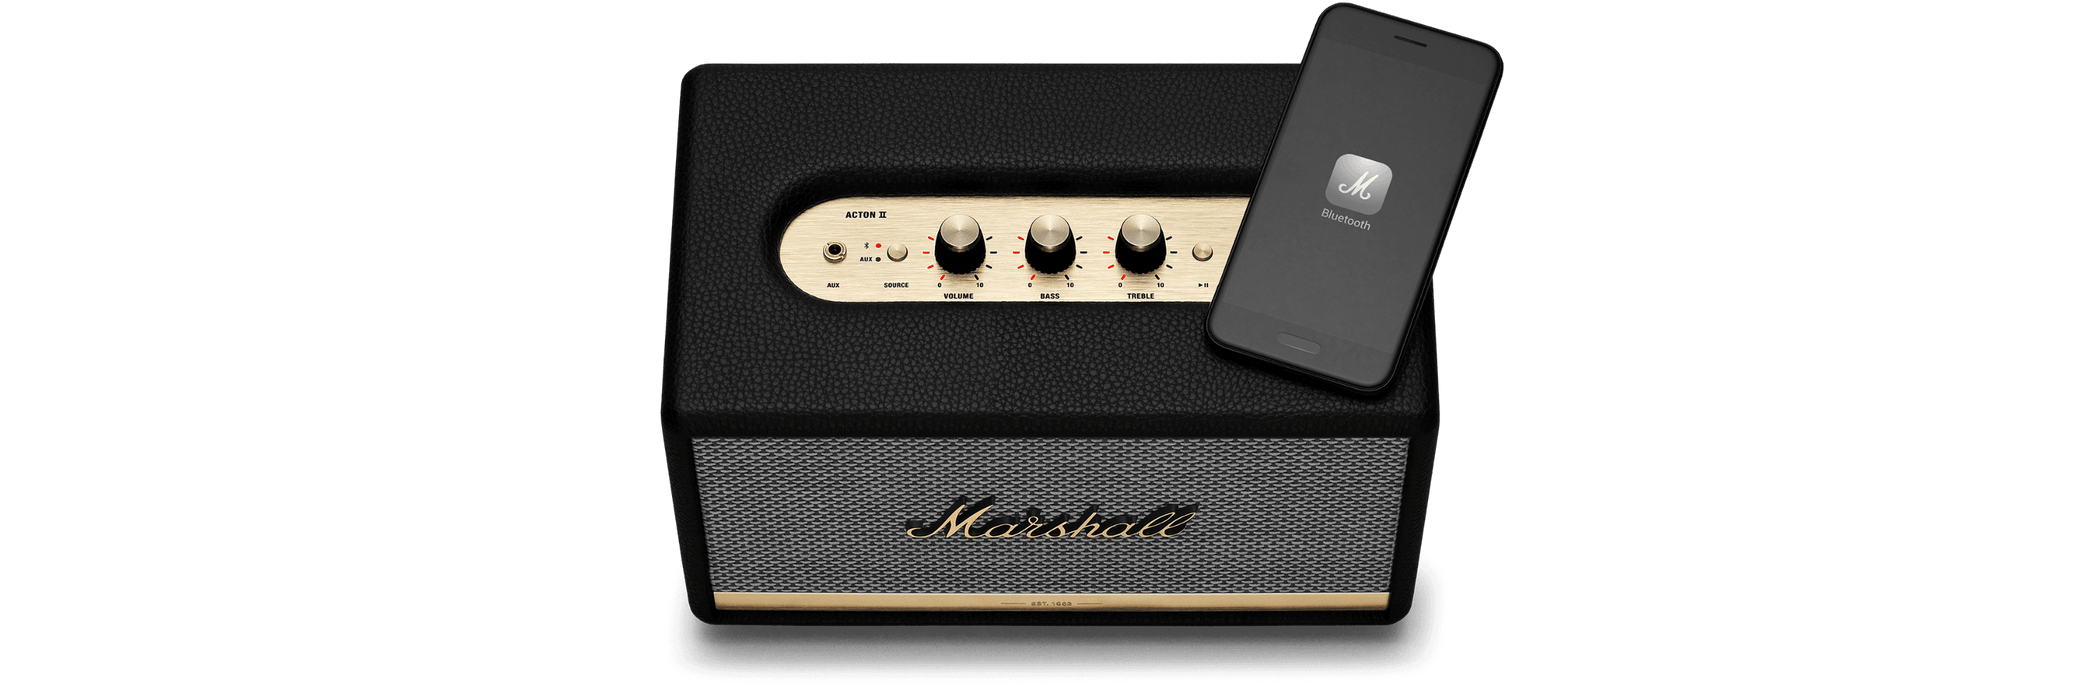 Marshall Acton II Bluetooth - Wireless Streaming Speaker